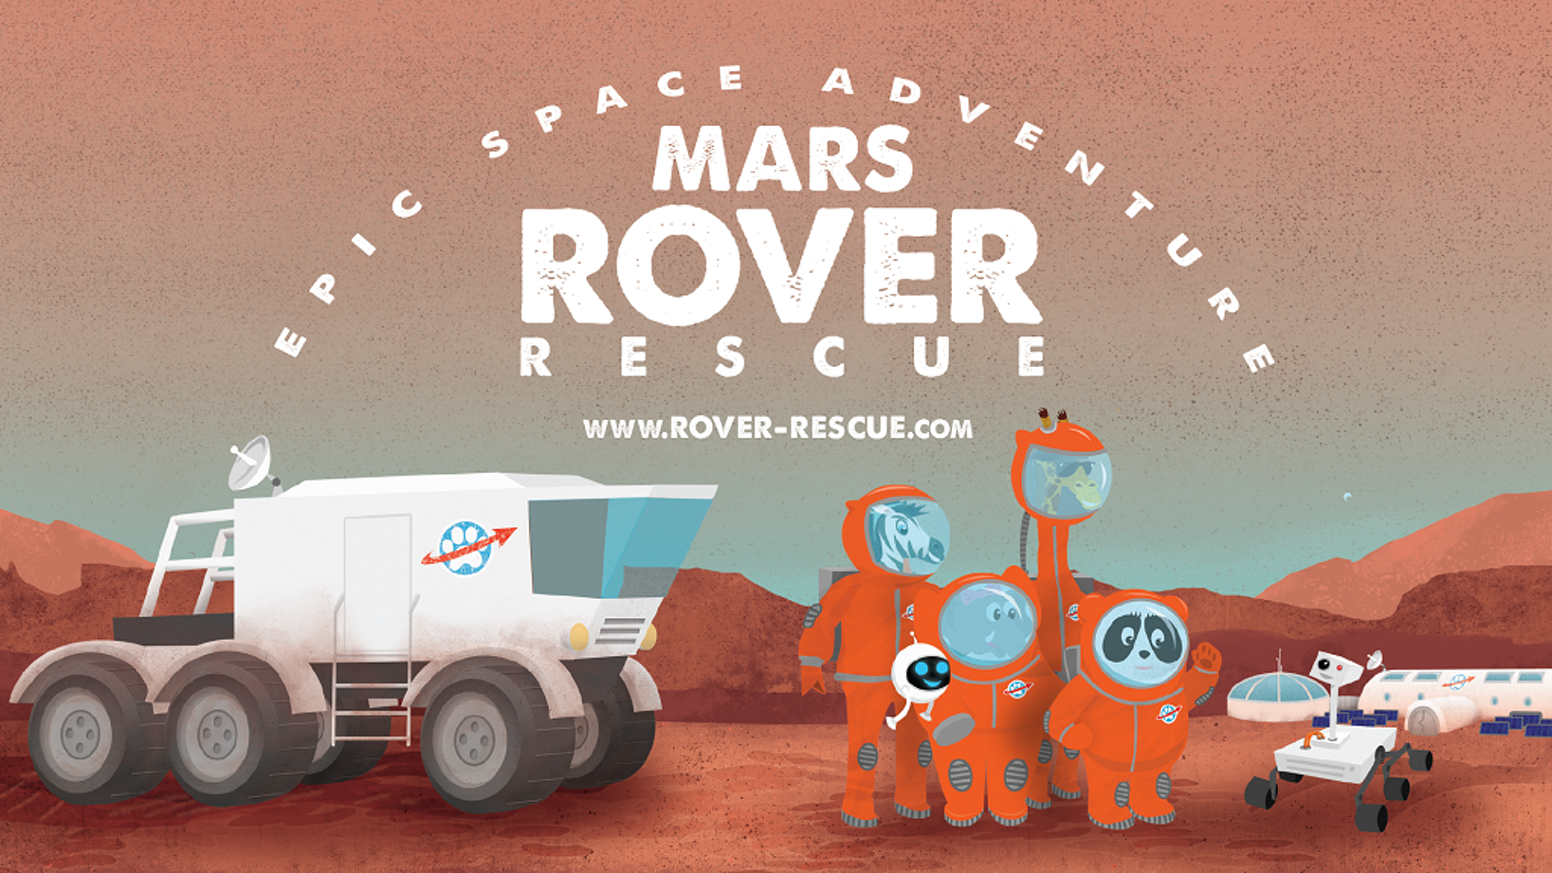 Your favorite giraffestronaut and robot are back, and this time they're forming a rescue party to search for a missing Mars rover.